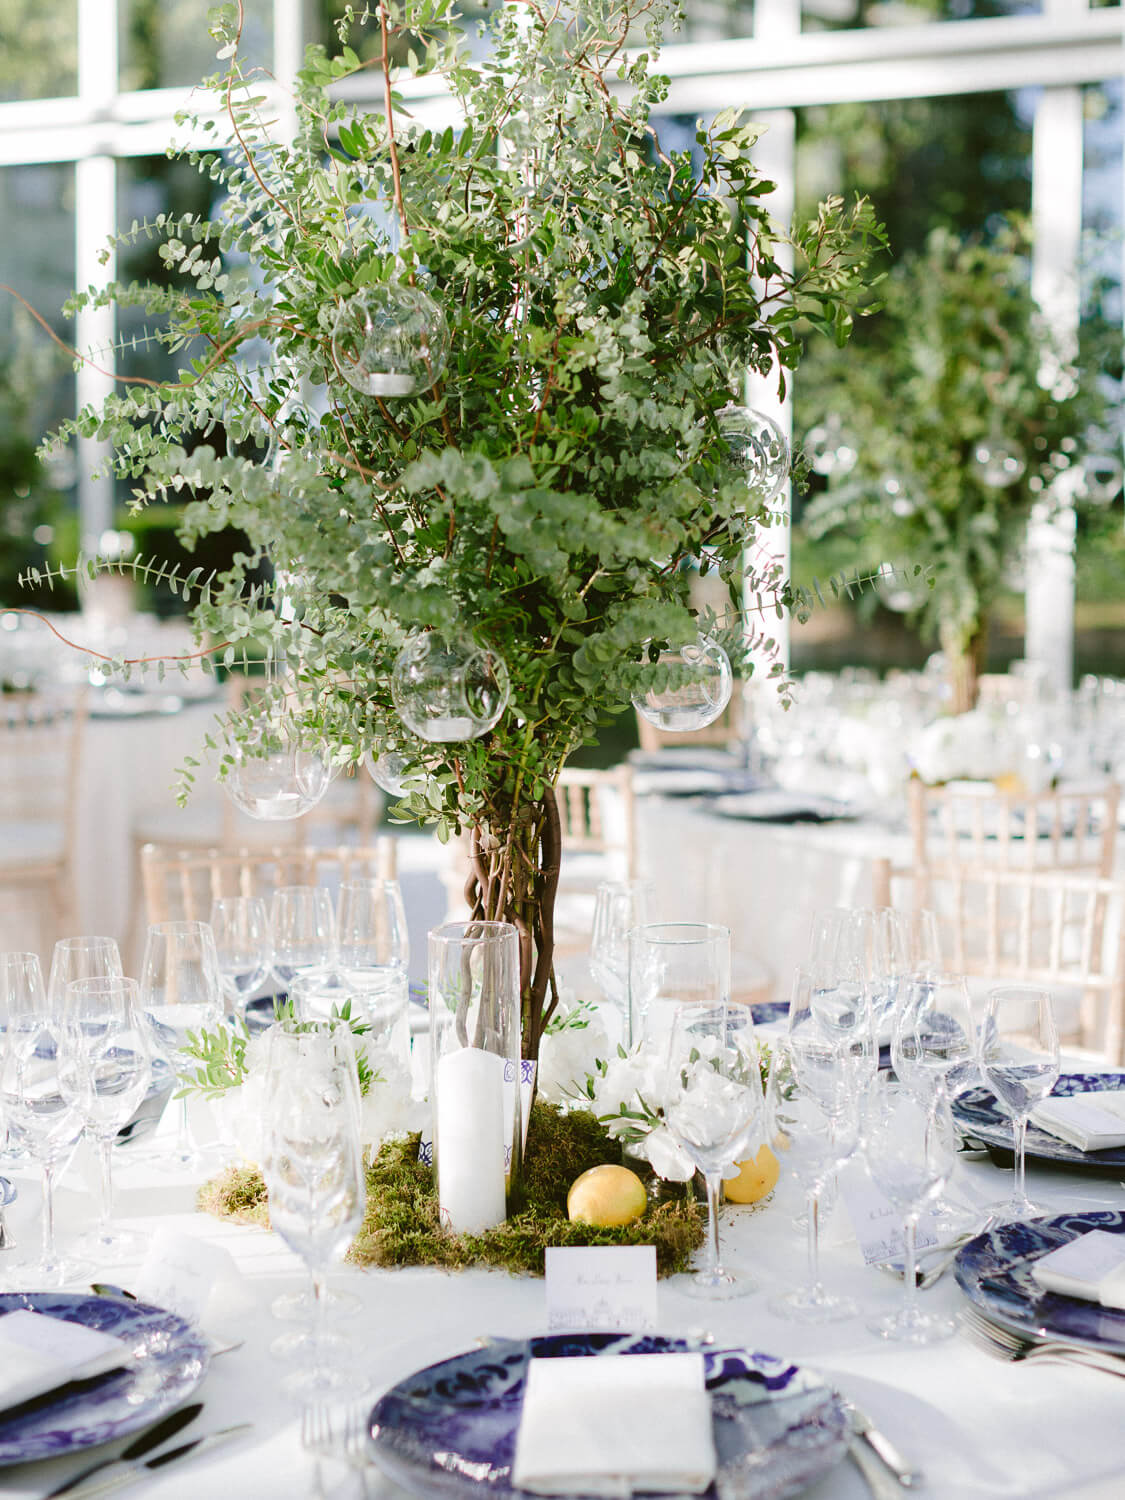 tall greenery reception centrepieces for a wedding reception in Seteais Palace Sintra by Portugal Wedding Photographer